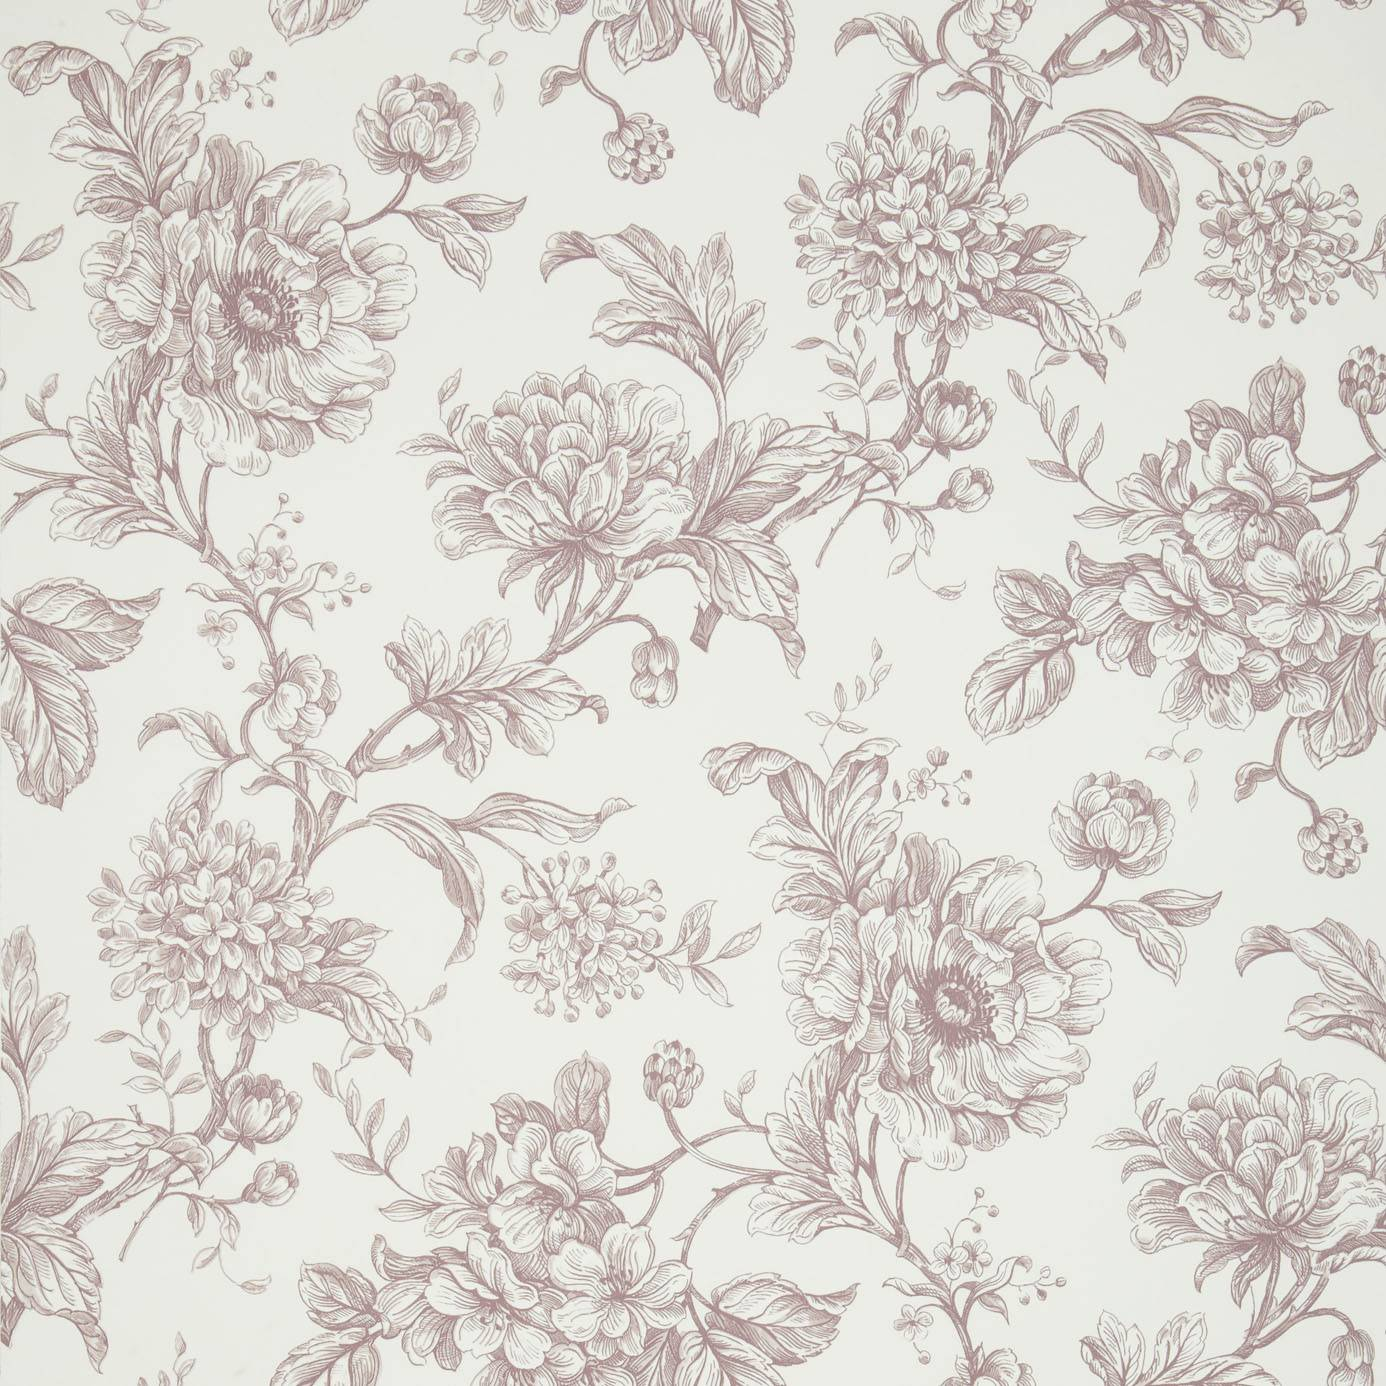 william morris fabric images